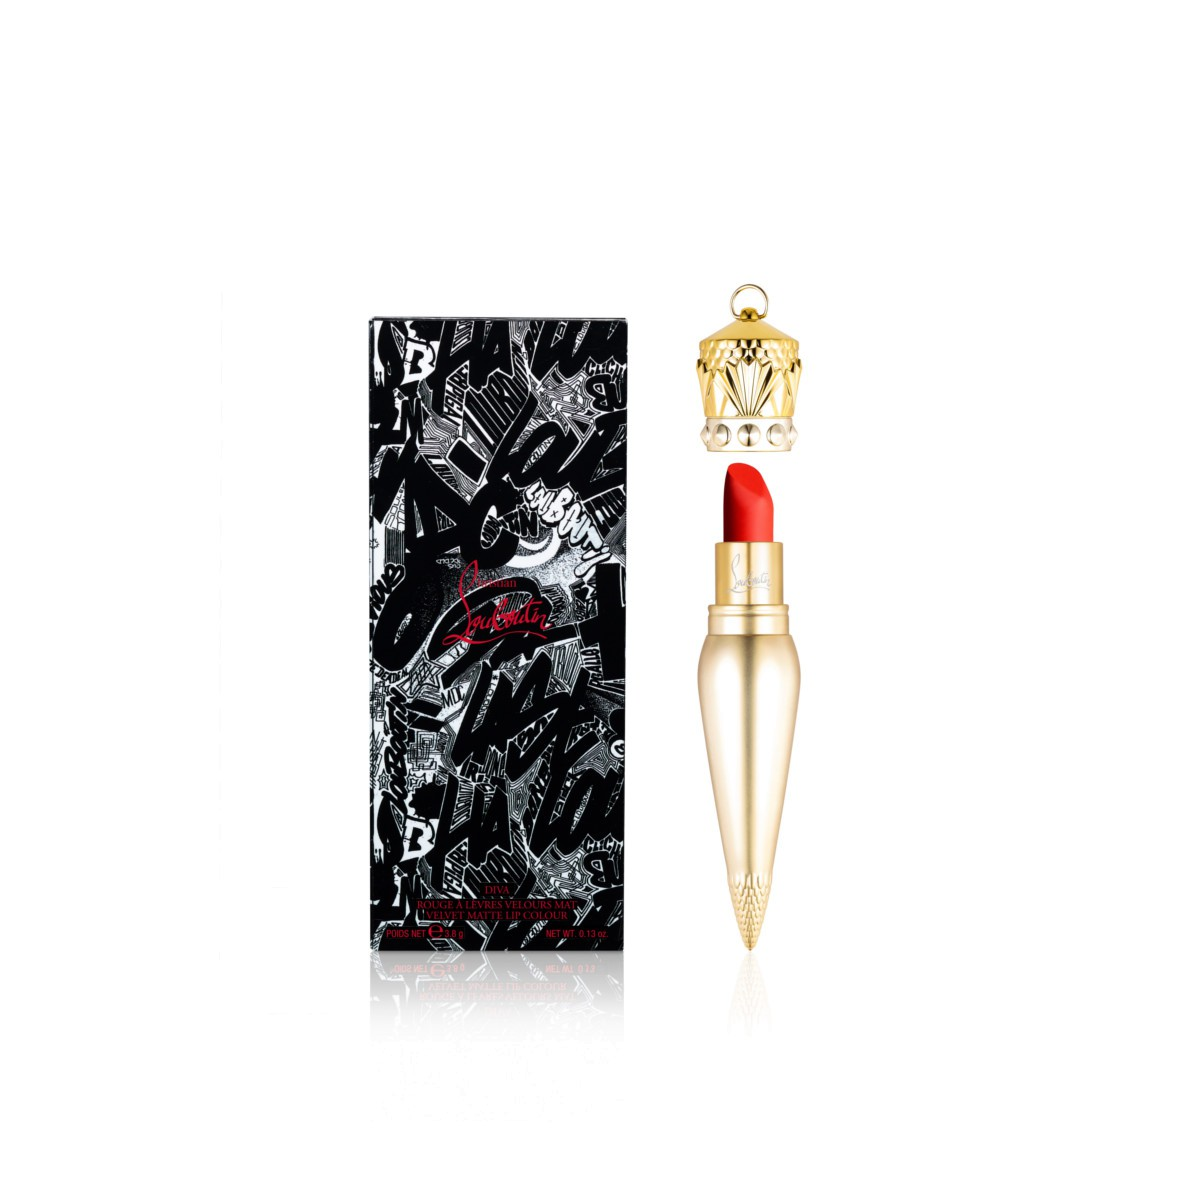 Beauty - Diva Loubigraffiti - Christian Louboutin